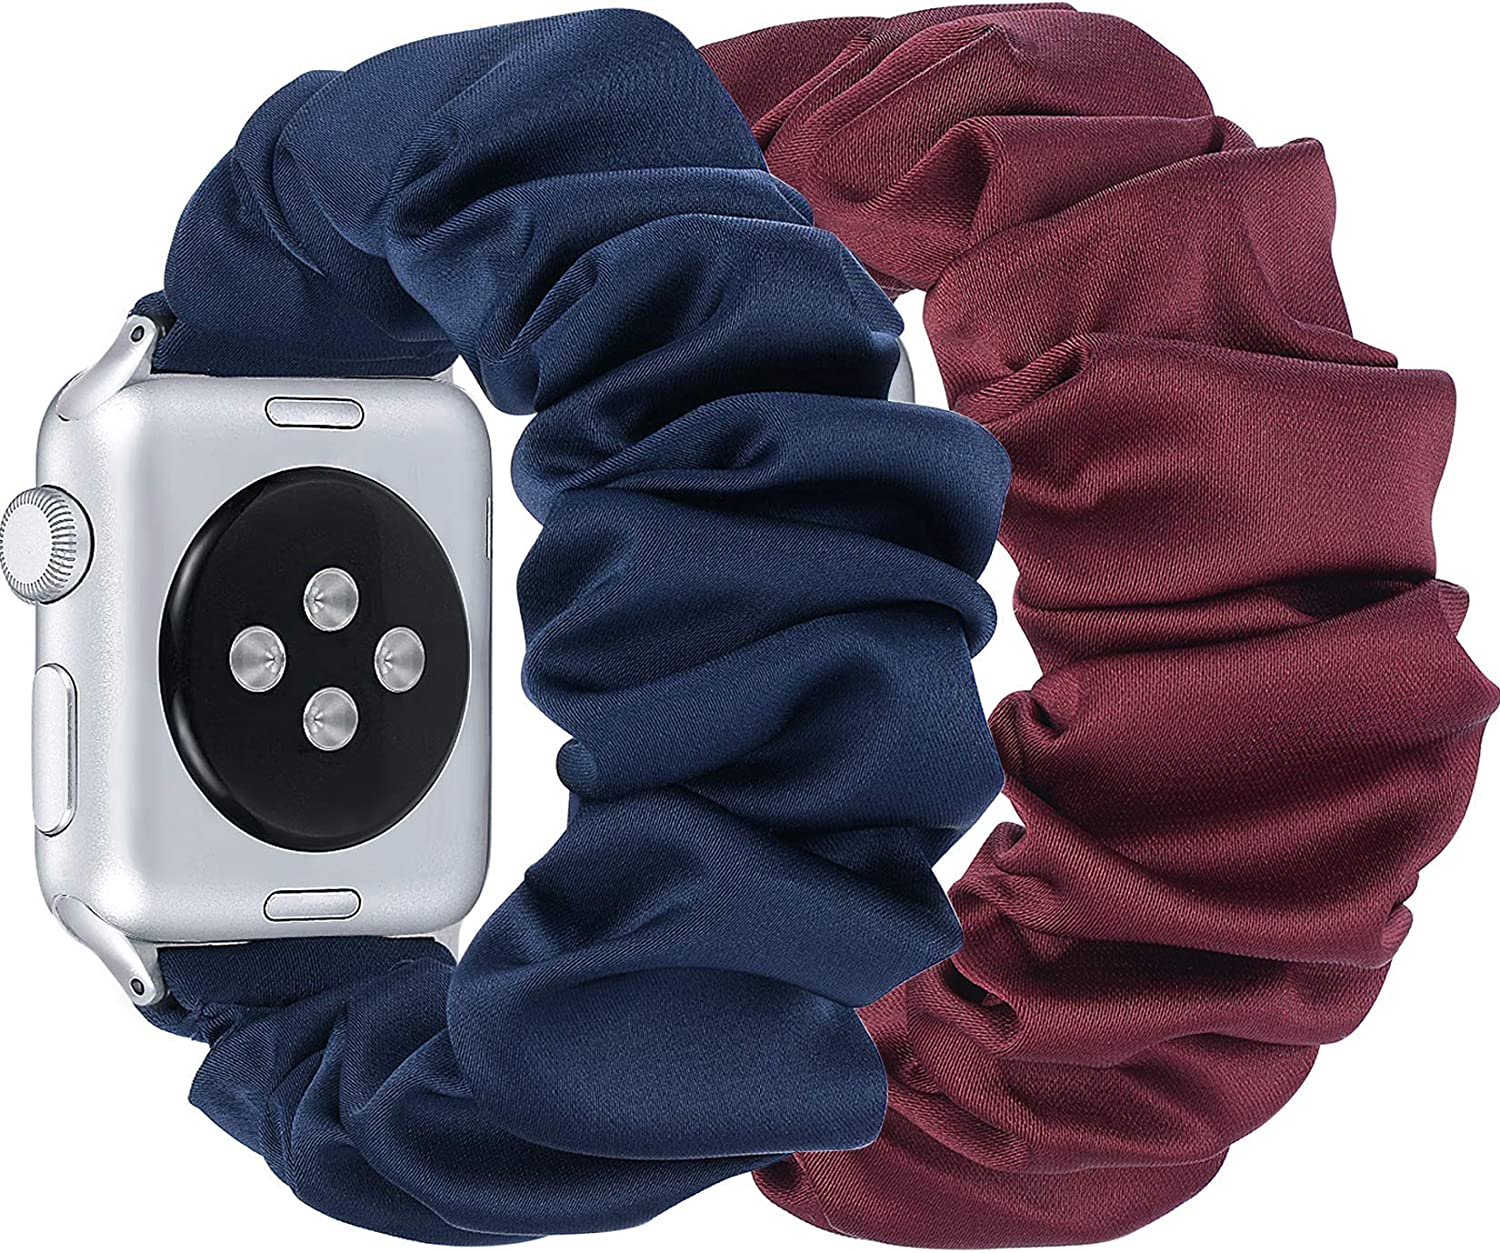 fastgo Compatible with Scrunchie Apple Watch Band Series 5/4 38mm/40mm,Women Girl Gift Elastic Bracelet Sport Strap Stretchy Replacement Wristband for Iwatch 3/2/1(Wine Red & Dark Blue,38/40mm)